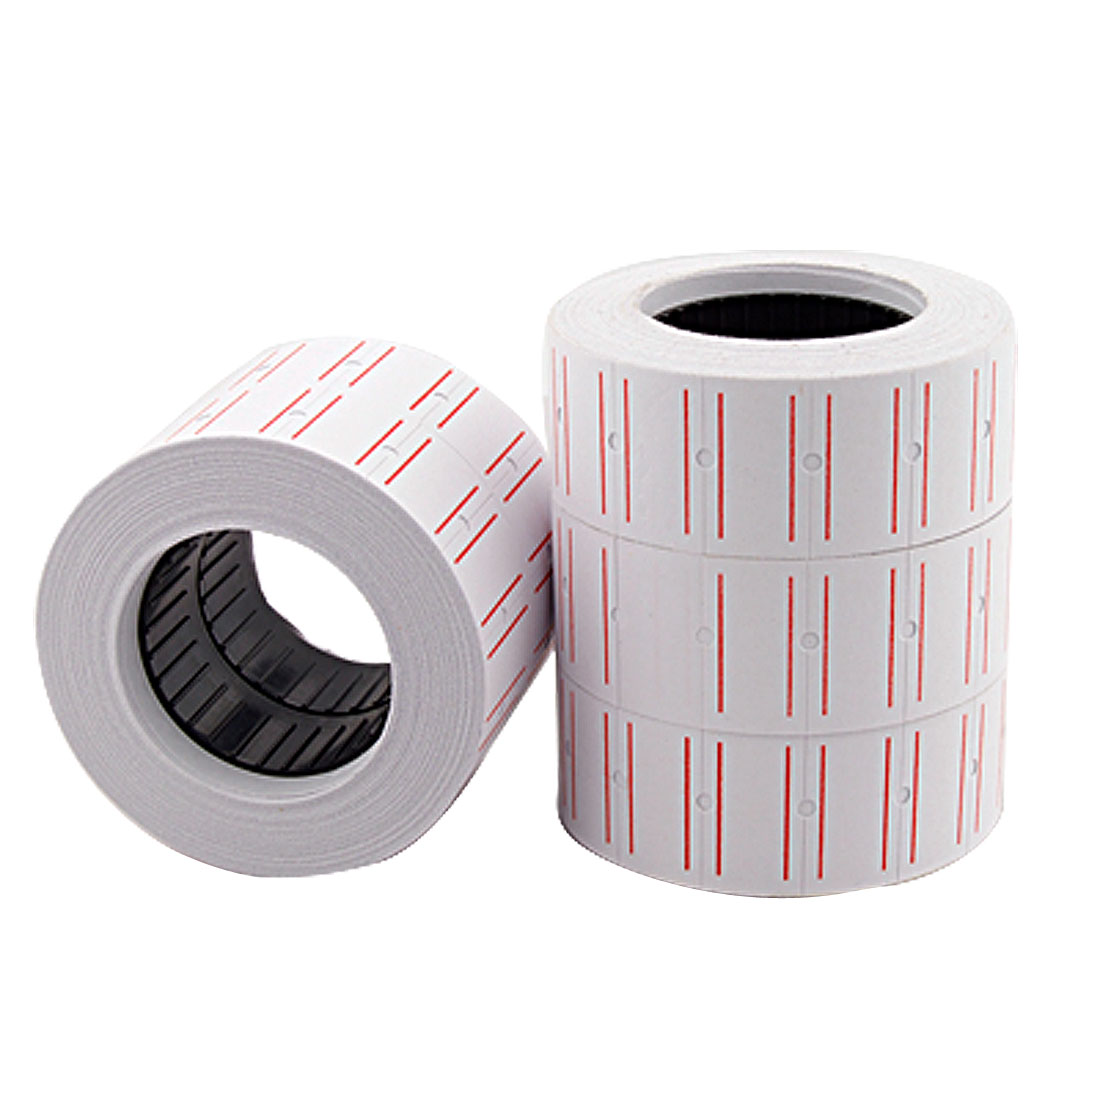 Self Adhesive Sticker Price Marking Label Roll 5pcs for School Office